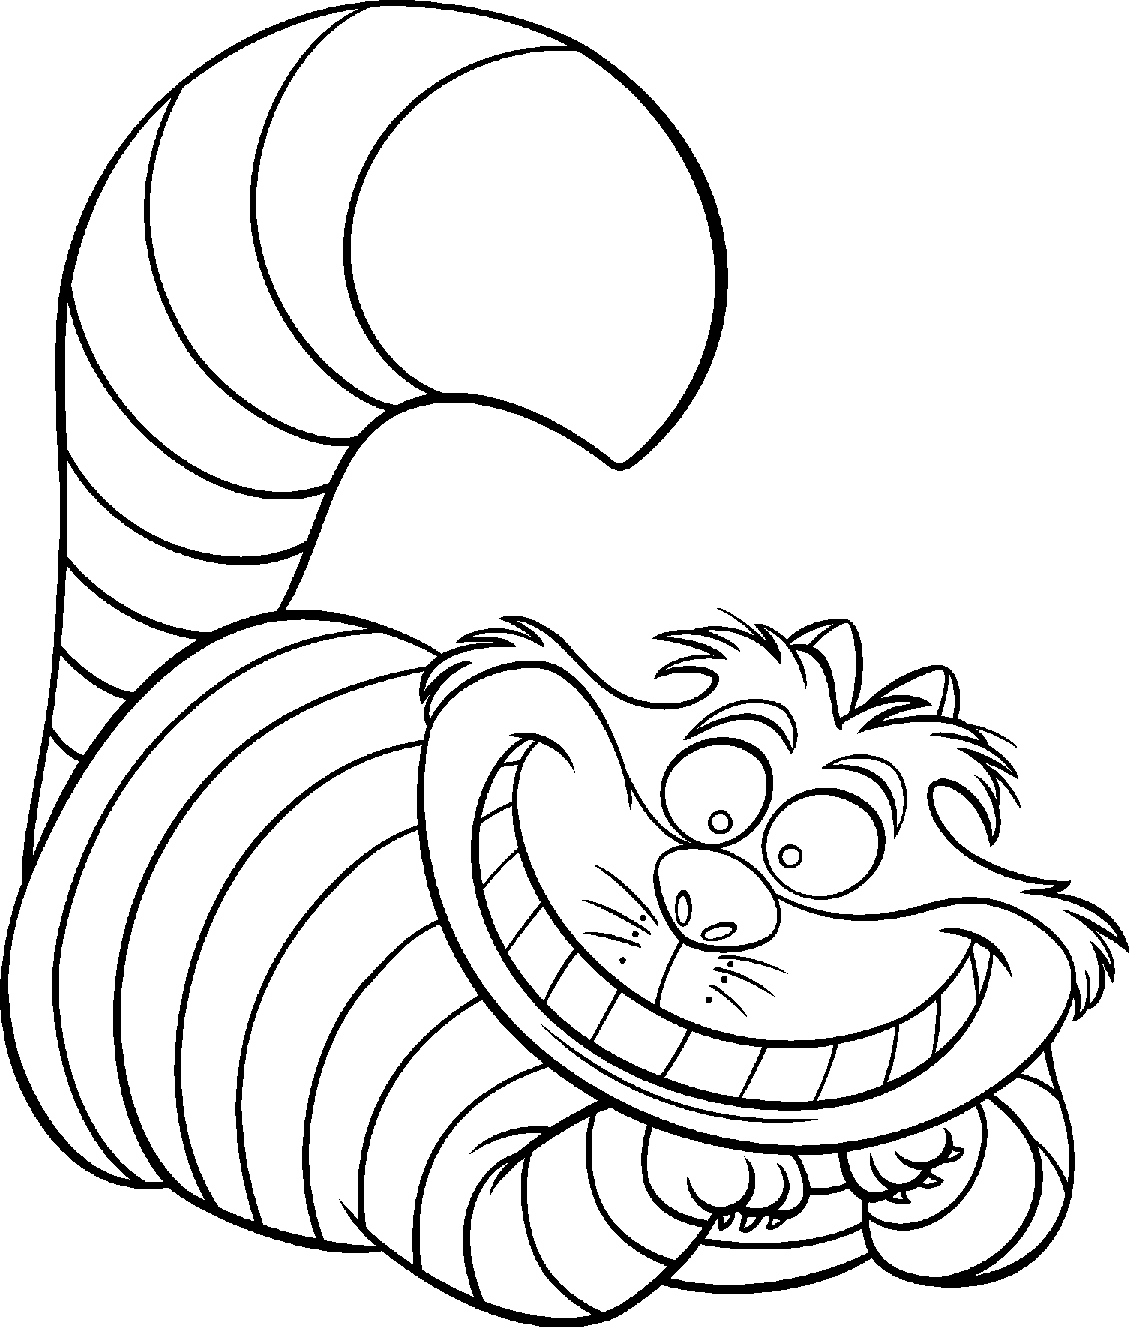 funny printable coloring pages - photo#7